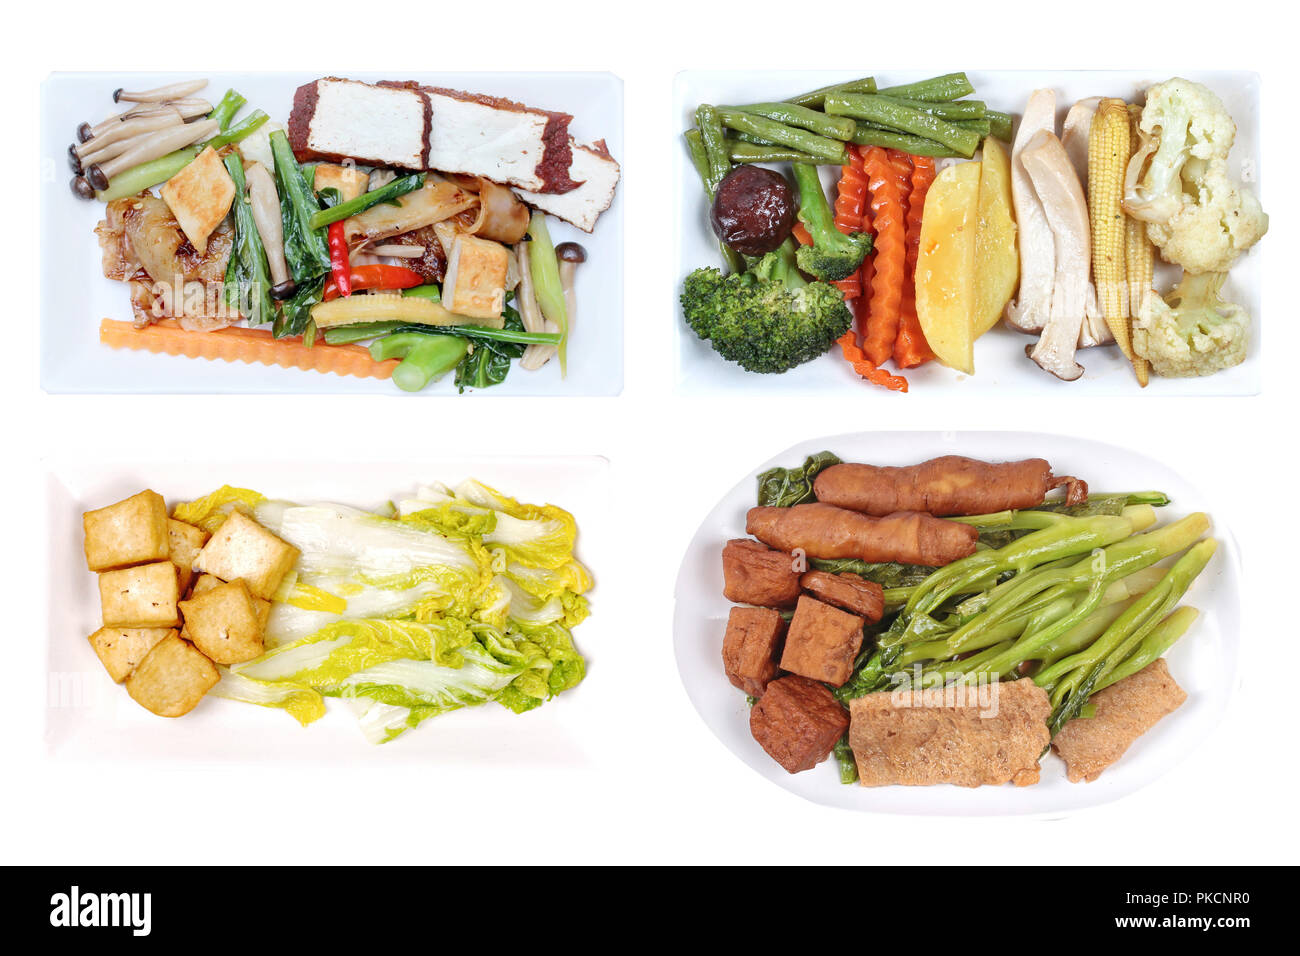 Isolated of Chinese vegetable festival as mixed vegetables with tofu,fried  mixed vegetables,  mixed vegetable with slice tofu and  fried Kale with fe - Stock Image